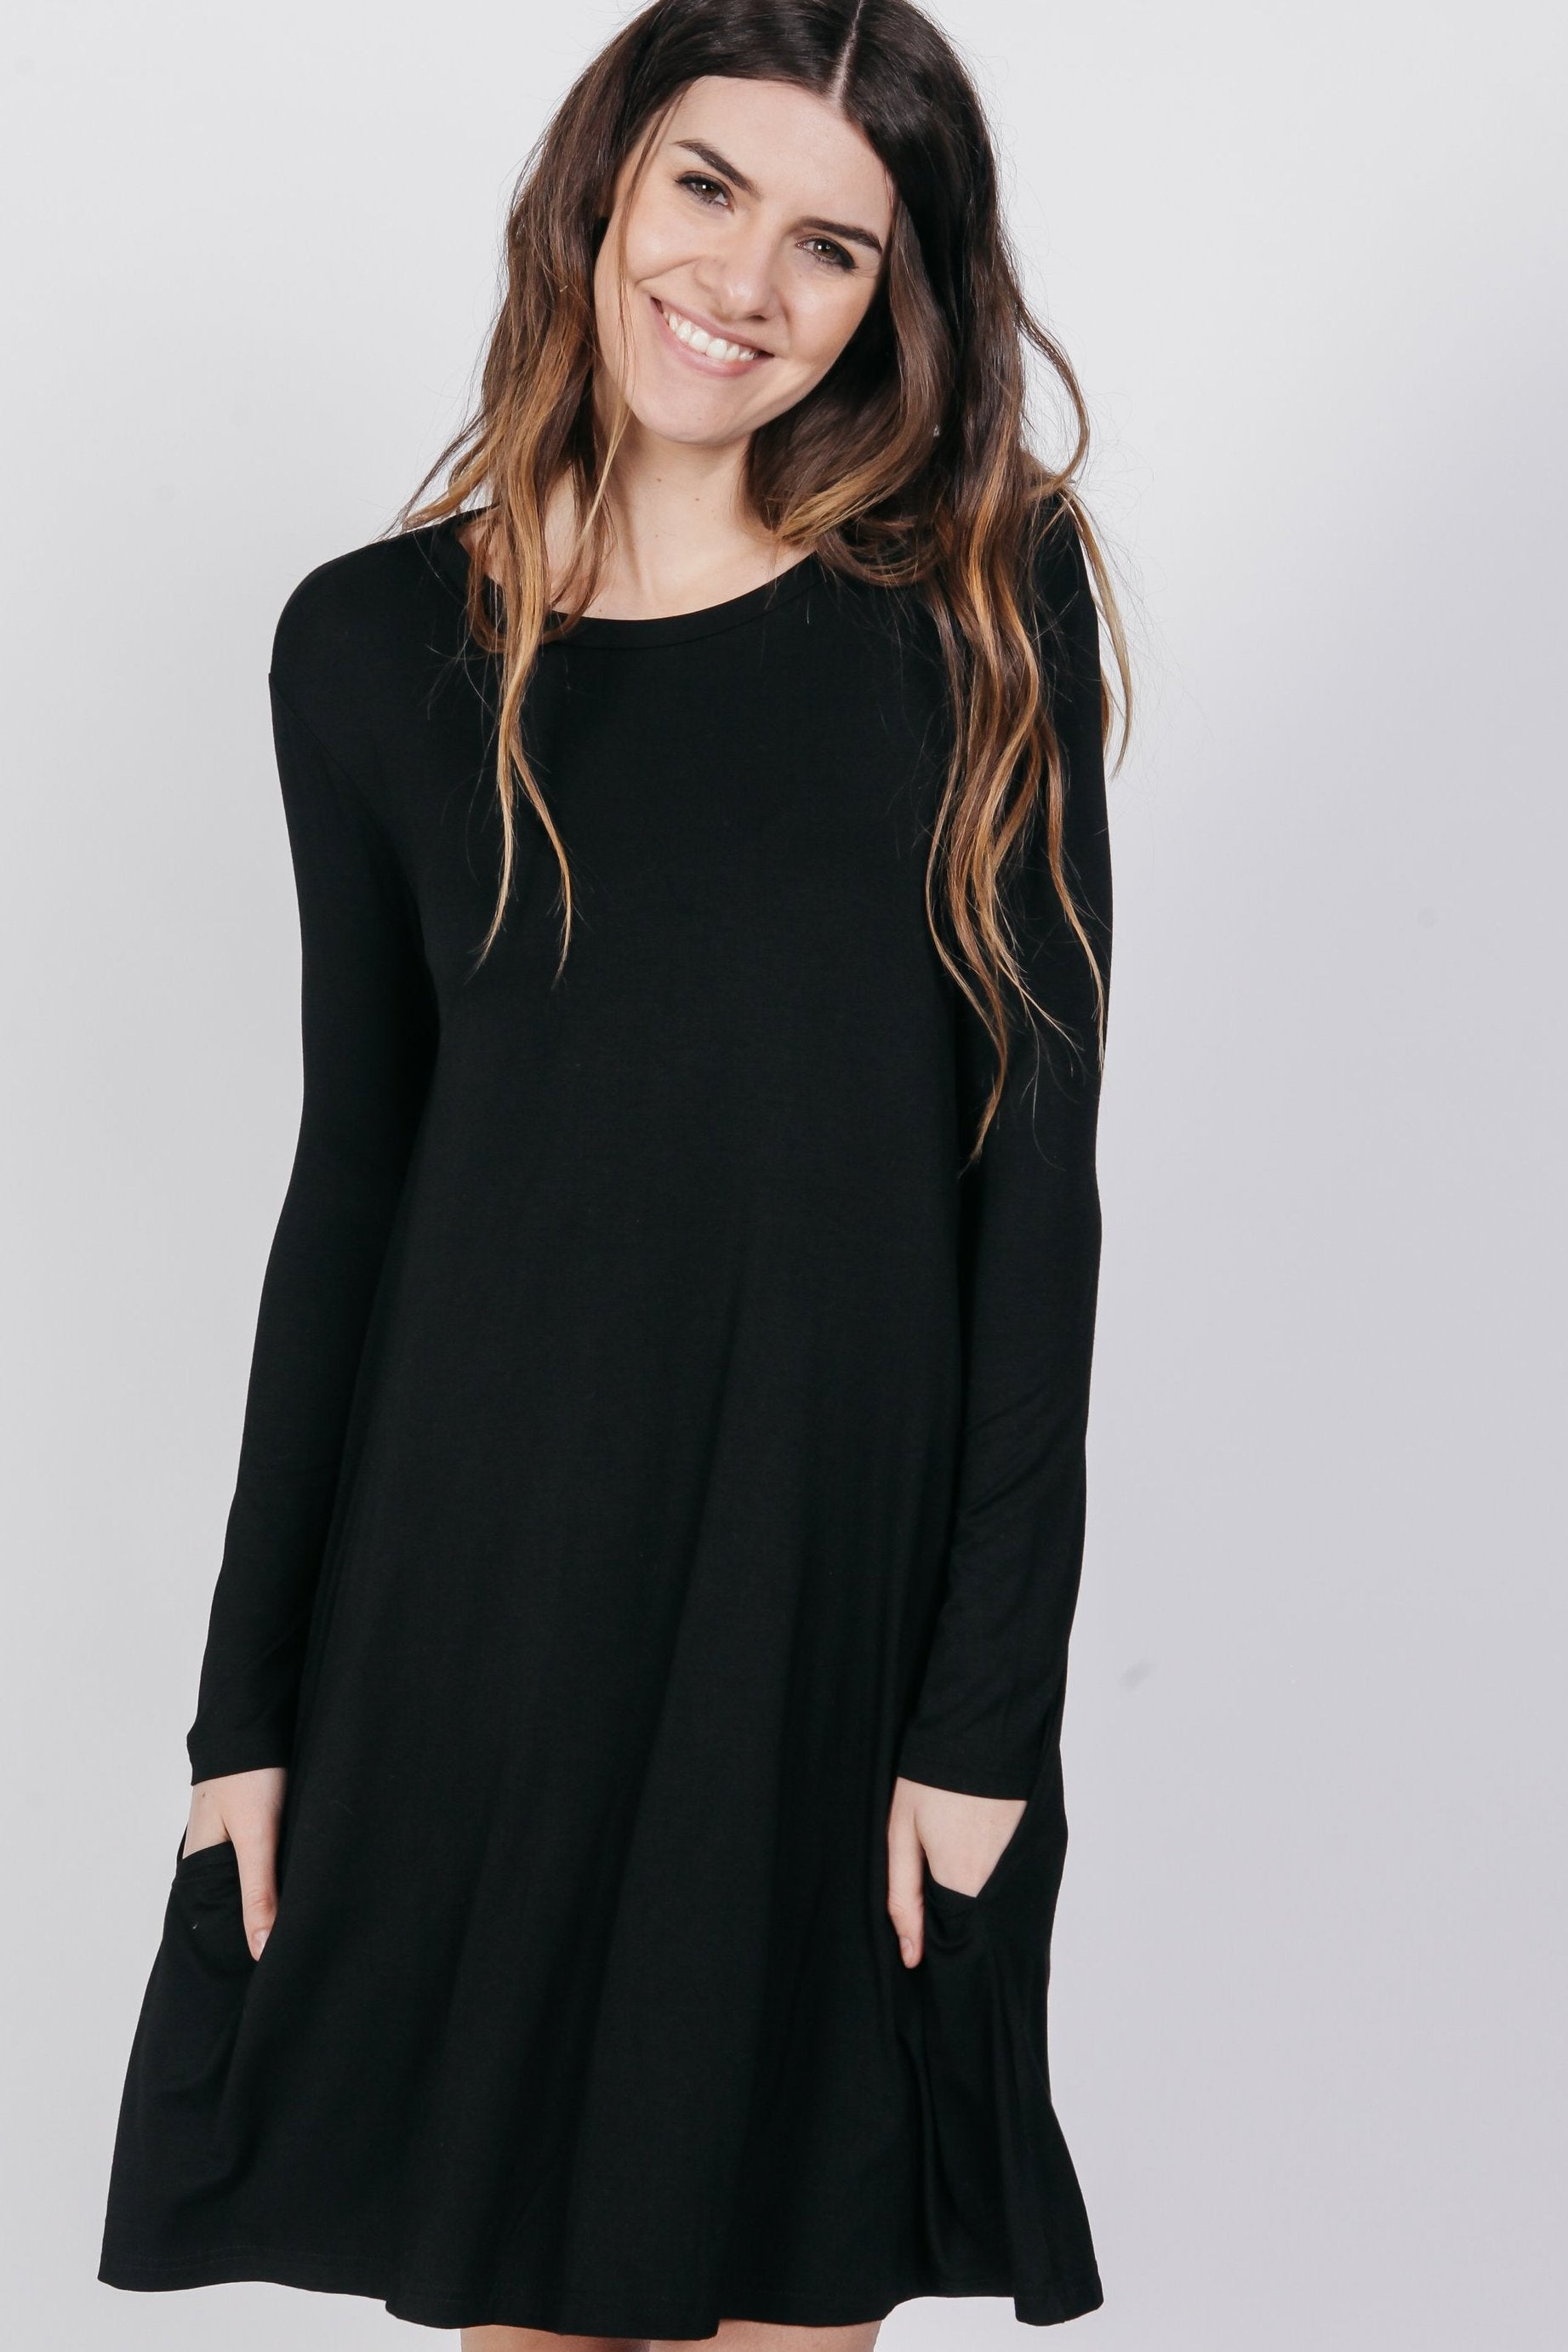 PIKO Long Sleeve Swing Dress - Black